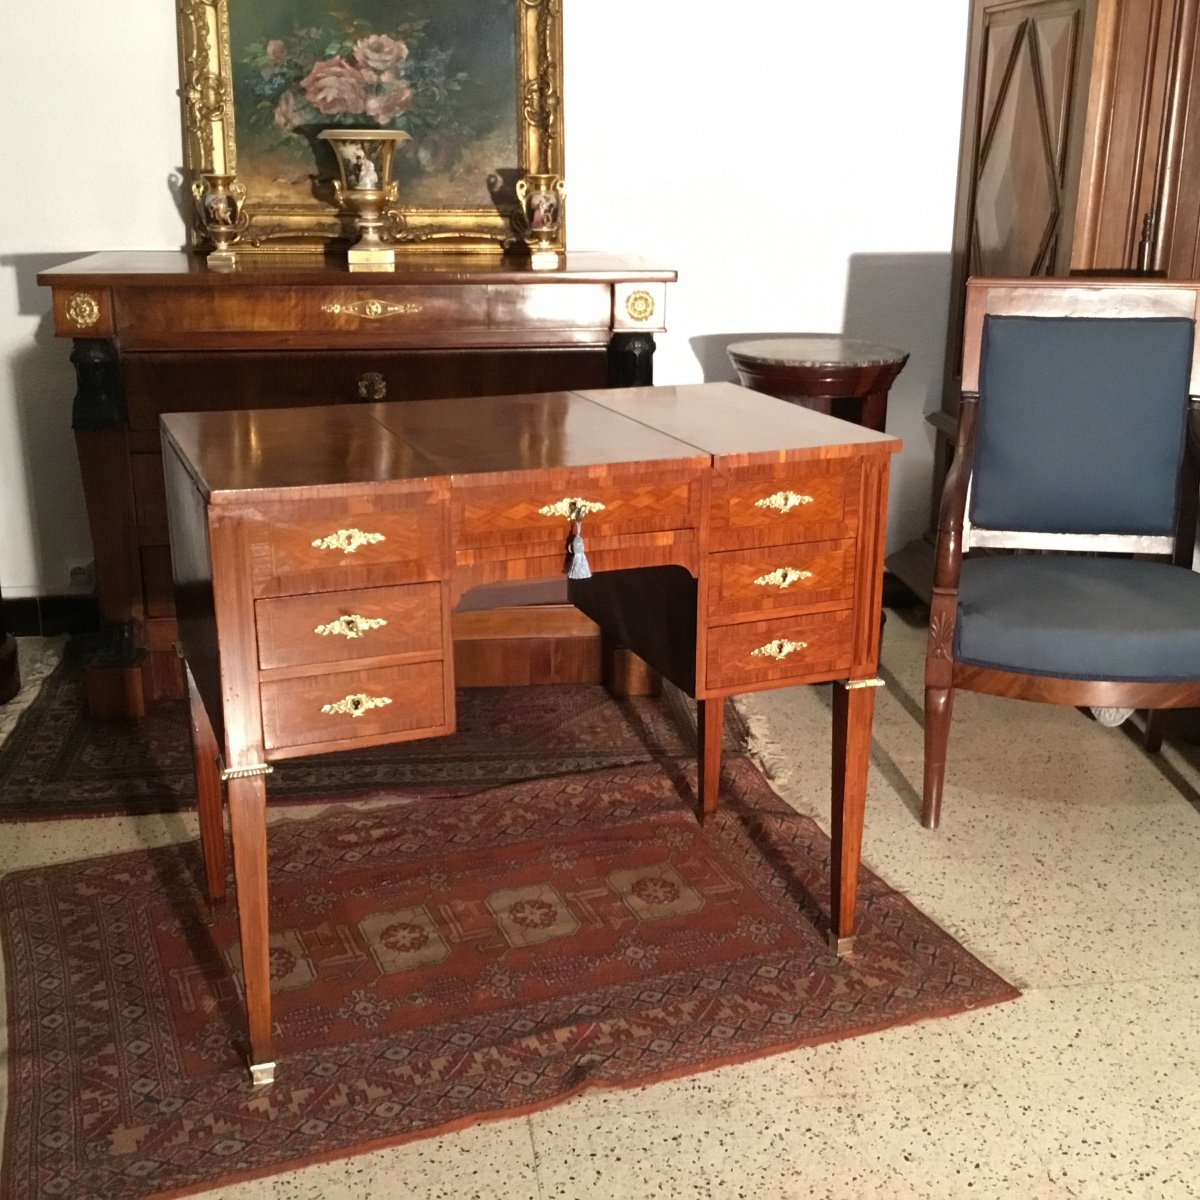 Beautiful Dressing Table In Louis XVI Style Marquetry From Napoleon III Period 19th Time